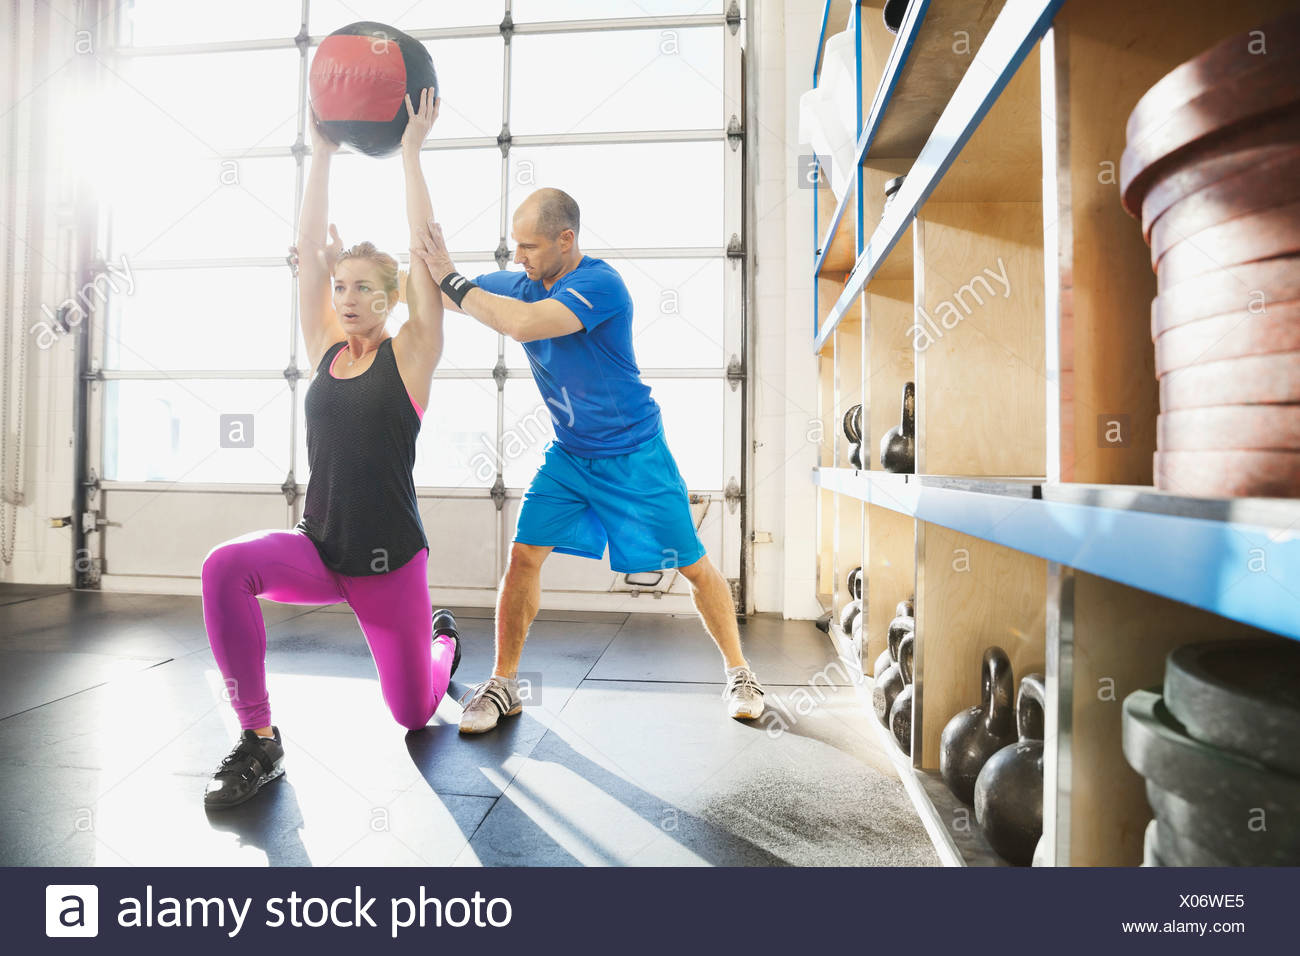 Gym instructor assisting woman with medicine ball lunge - Stock Image